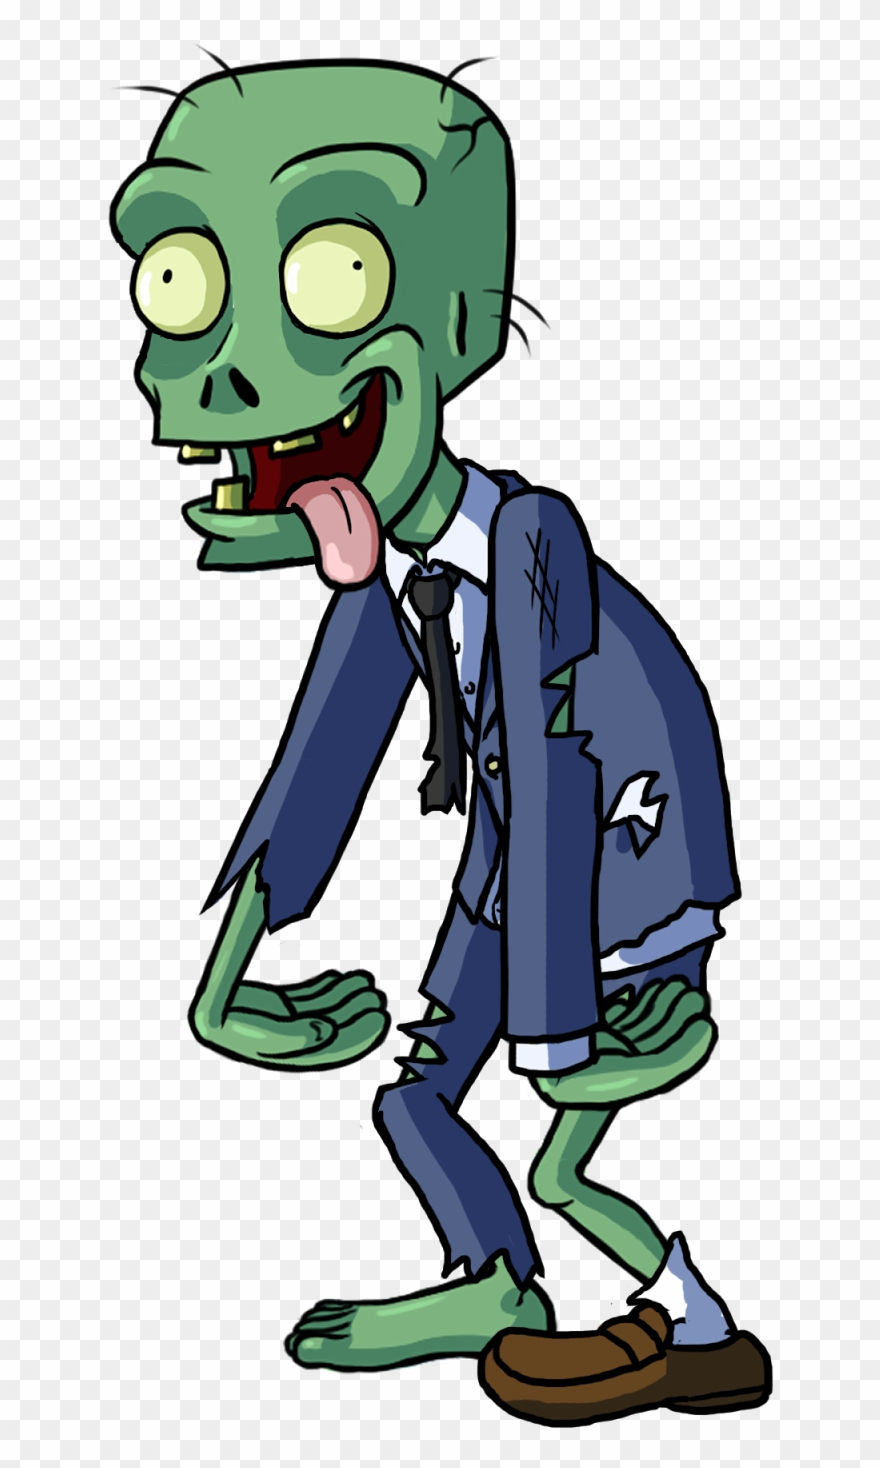 Download Png Zombie Cartoon Png Gif Base